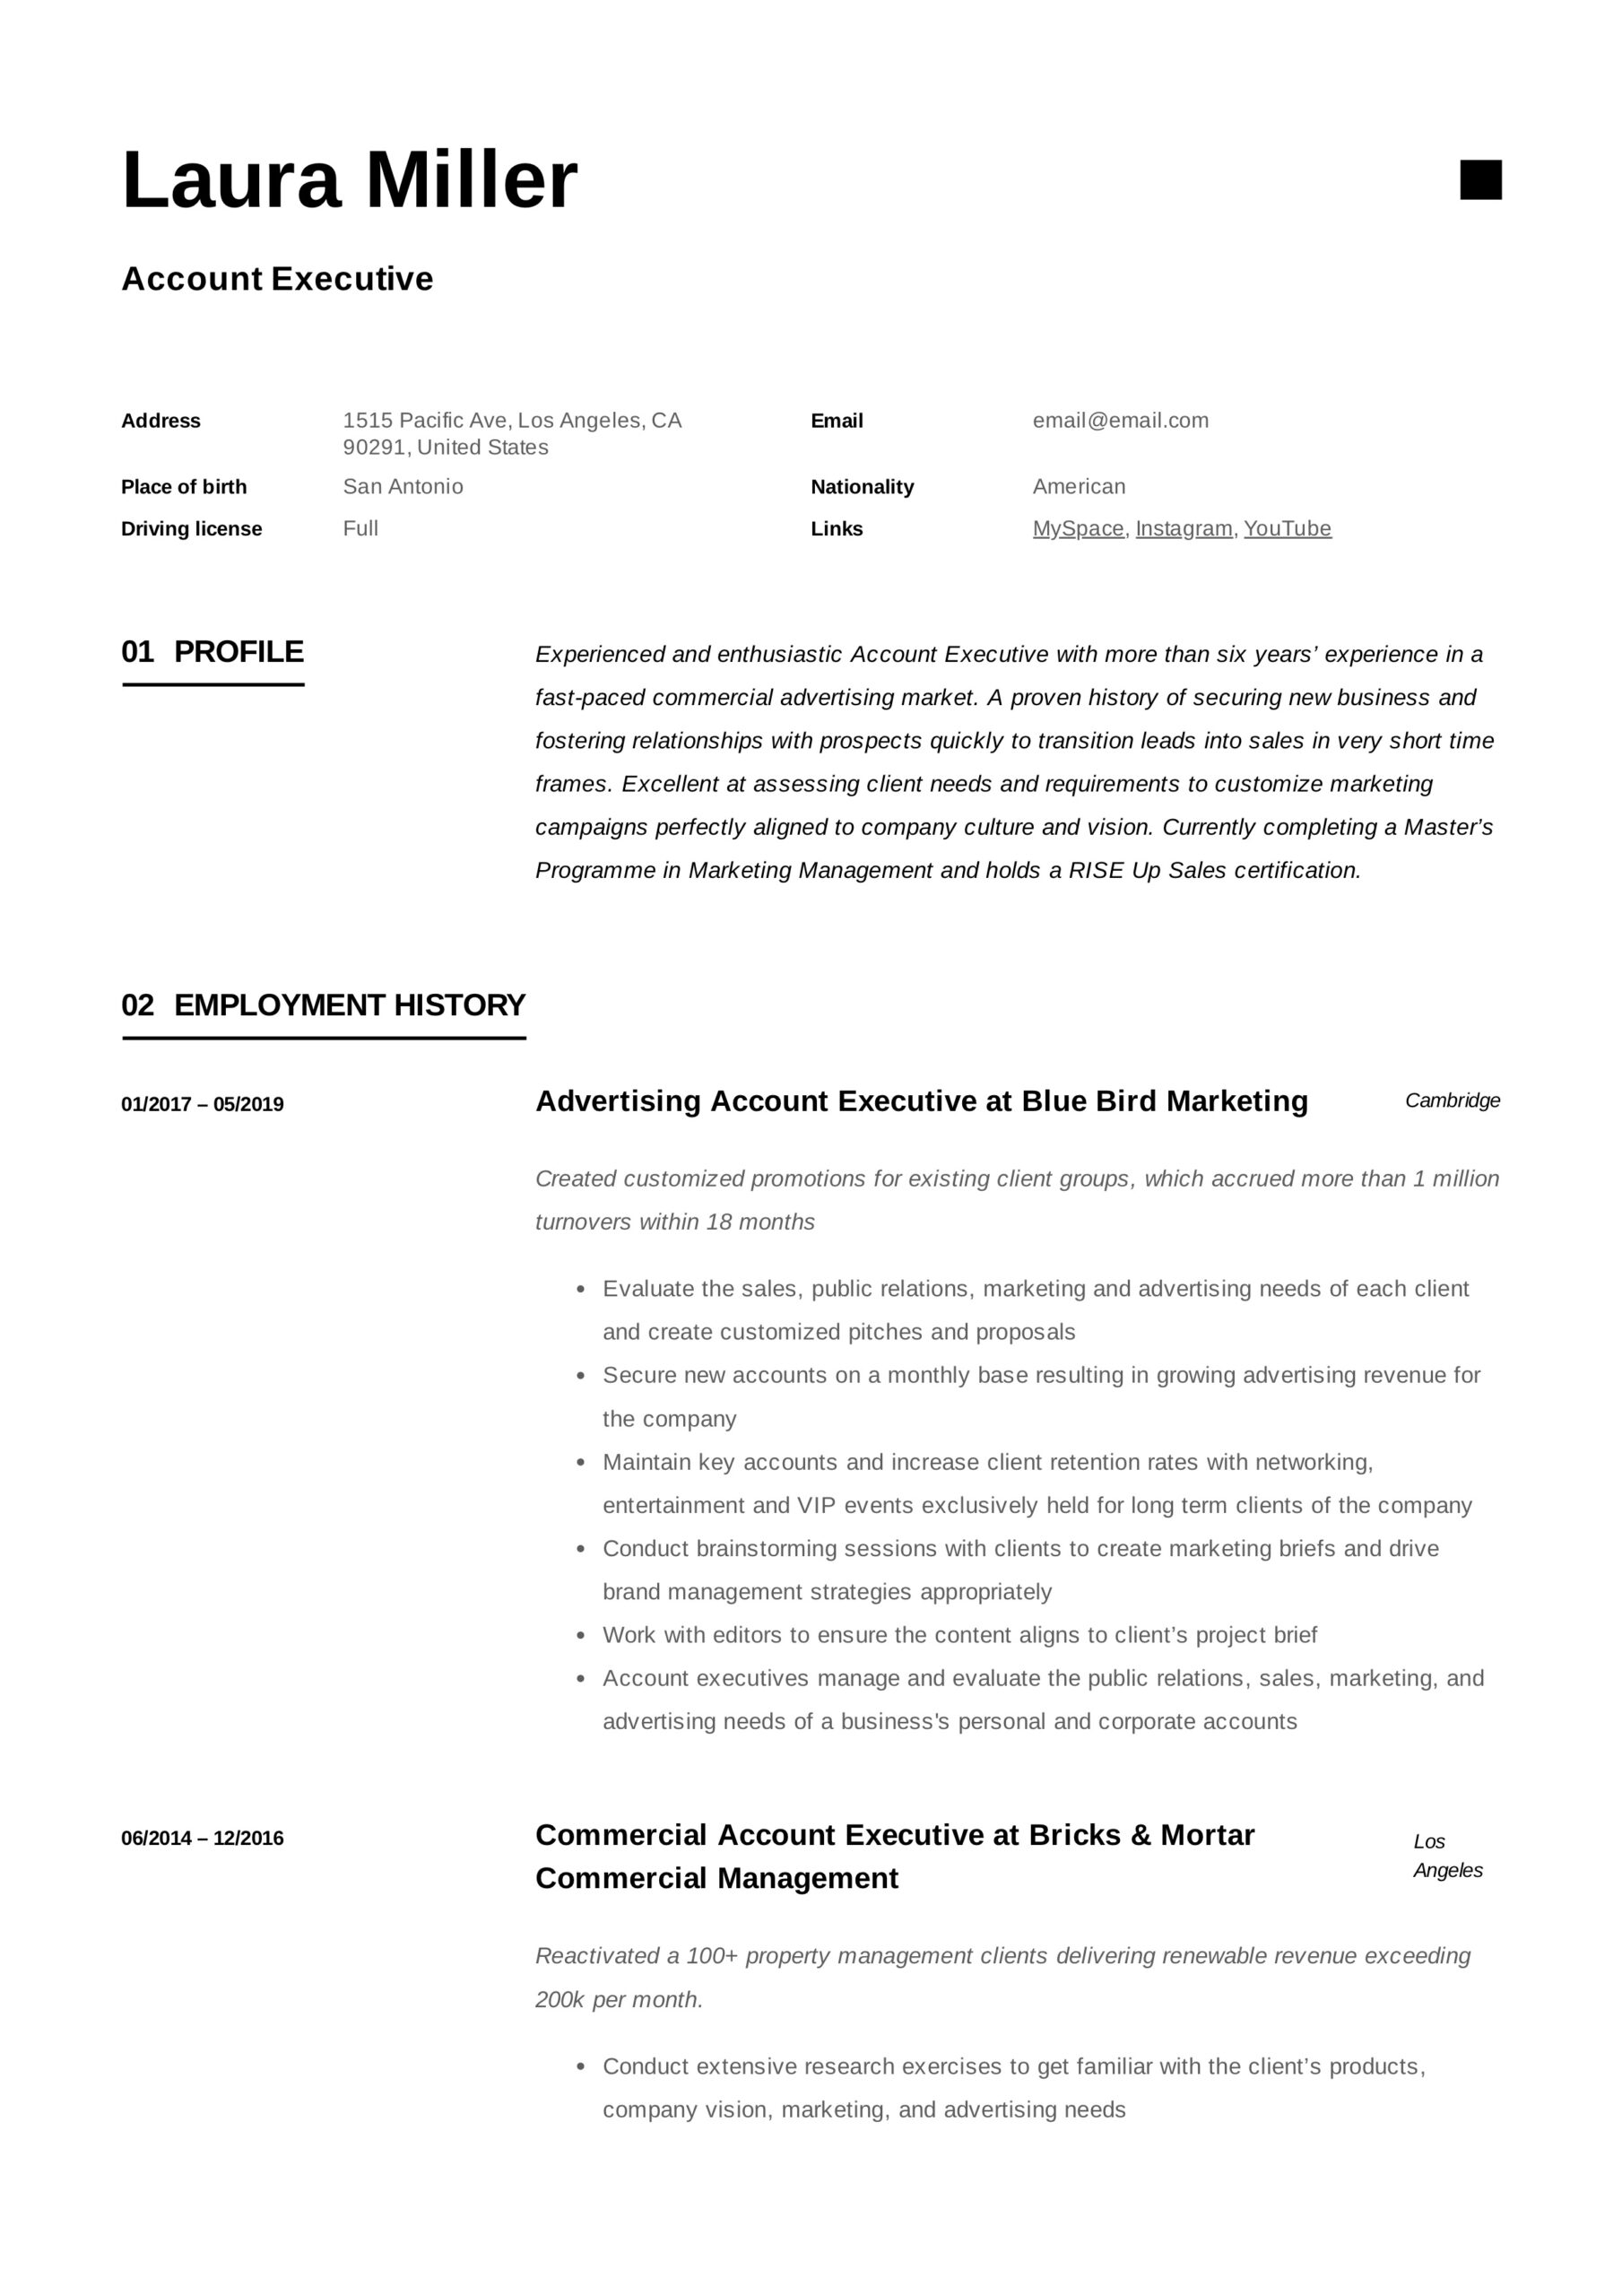 account executive resume writing guide templates pdf format example network administrator Resume Account Executive Resume Format Download